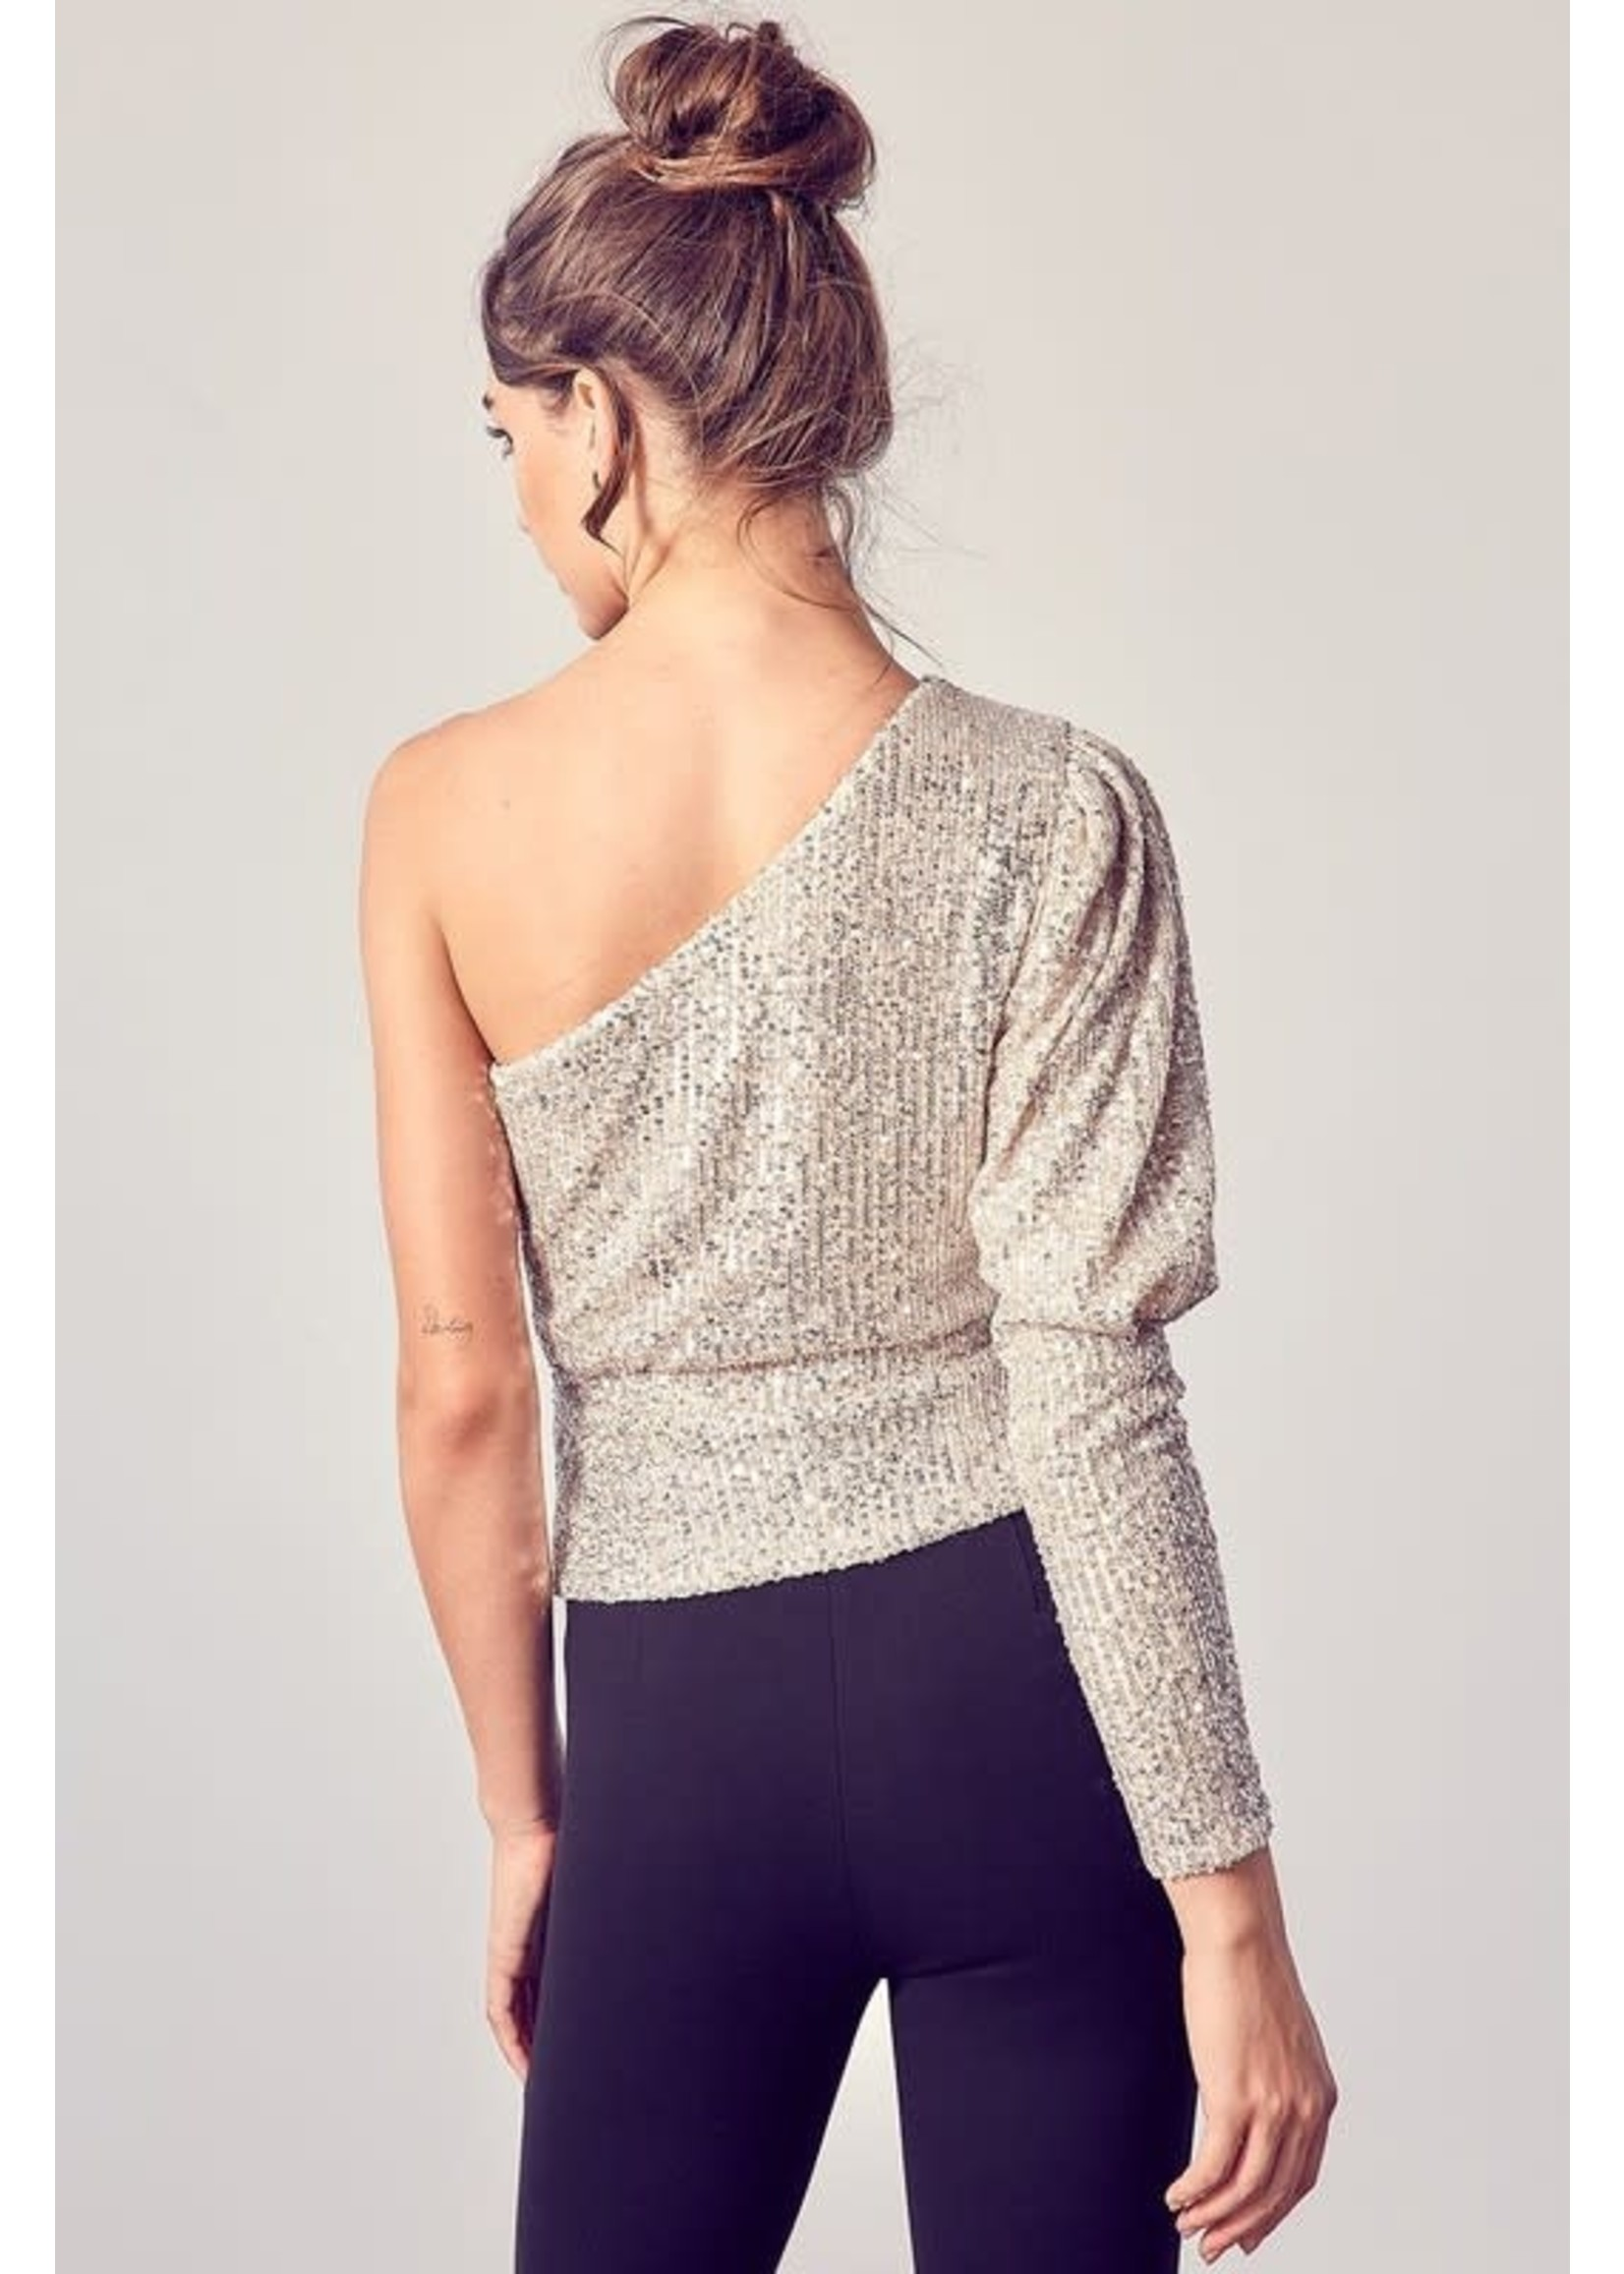 DO + BE One Shouldered Sequined Drape Top - Y20720